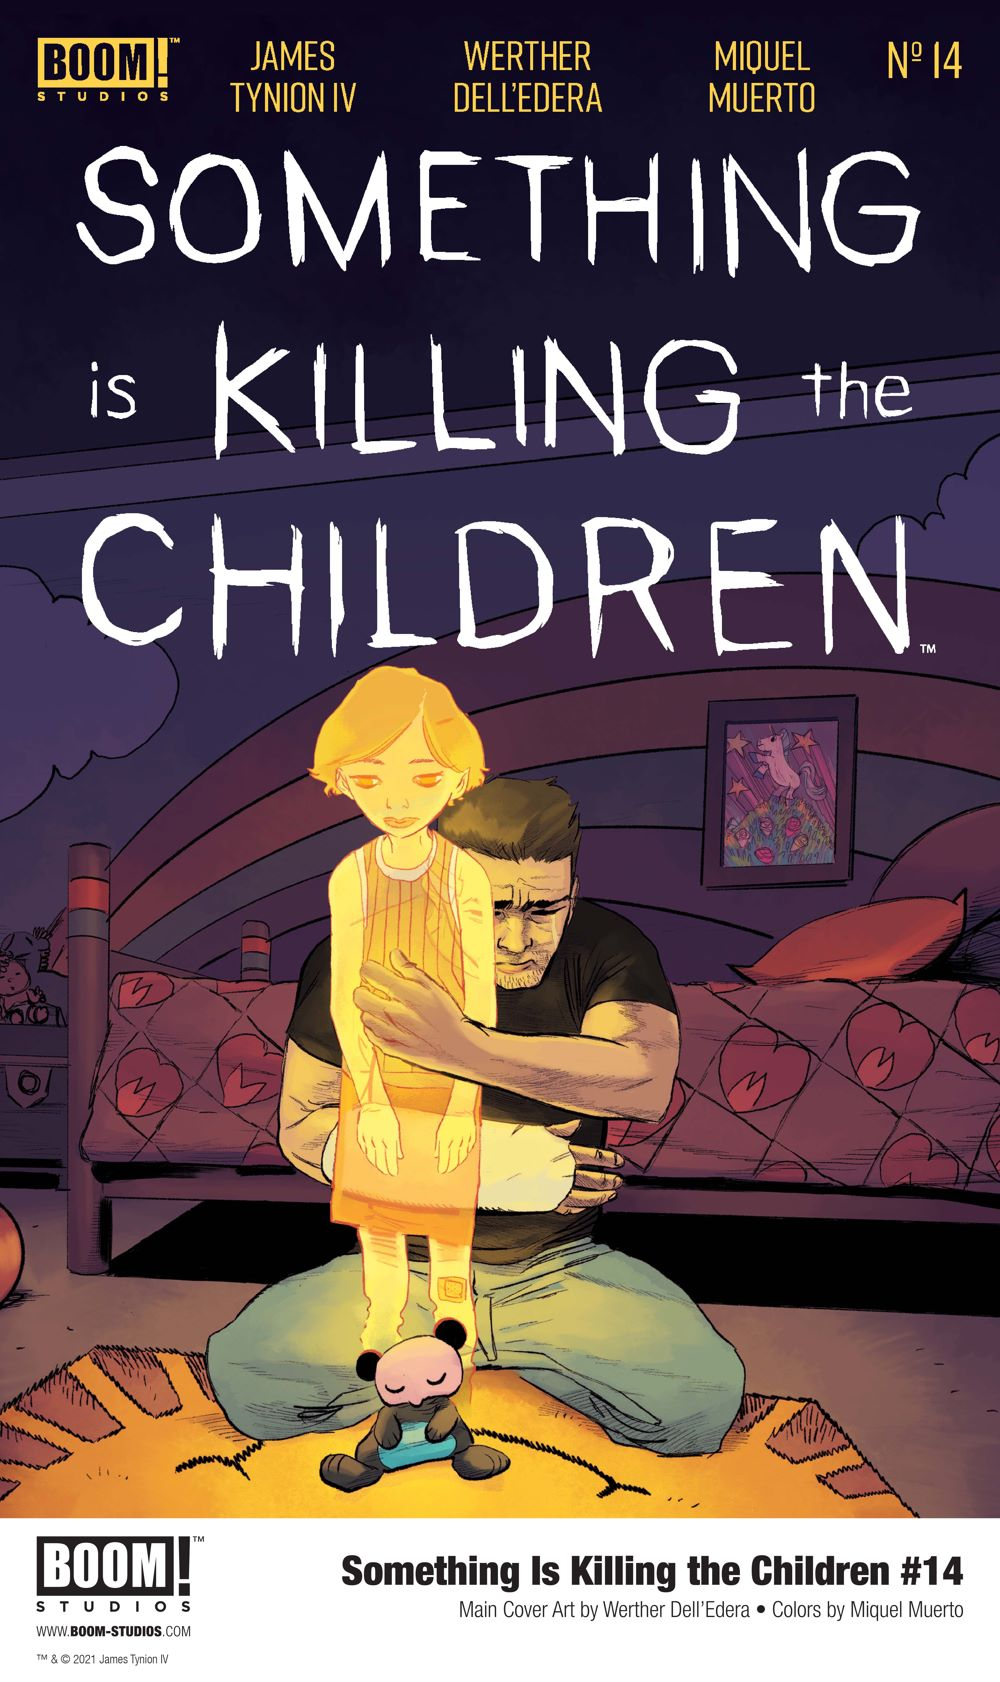 SomethingKillingChildren_014_Cover_Main_PROMO Your First Look at BOOM! Studios' SOMETHING IS KILLING THE CHILDREN #14